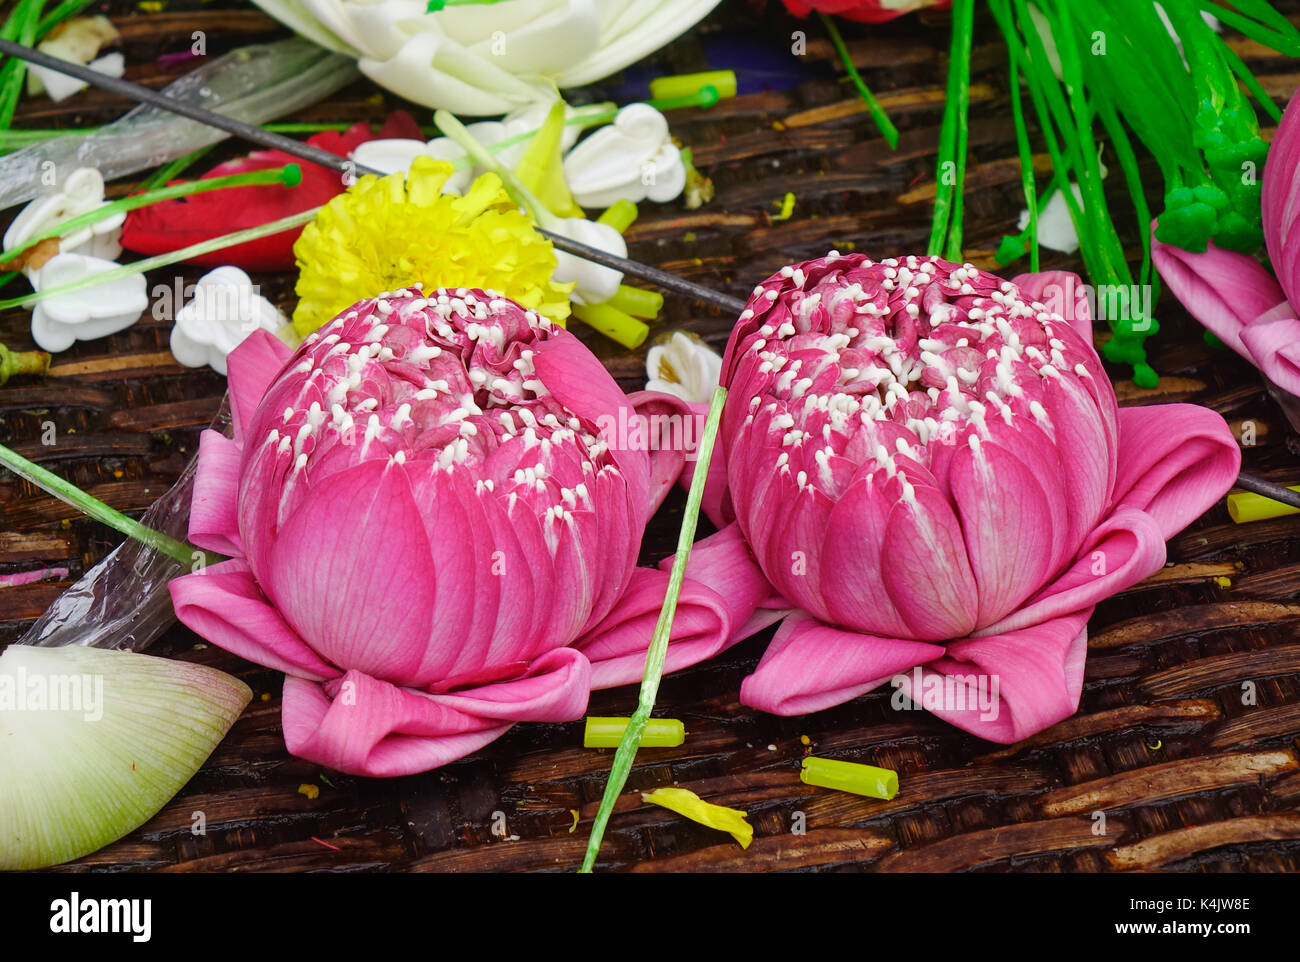 Lotus for sale stock photos lotus for sale stock images for Lotus plant for sale